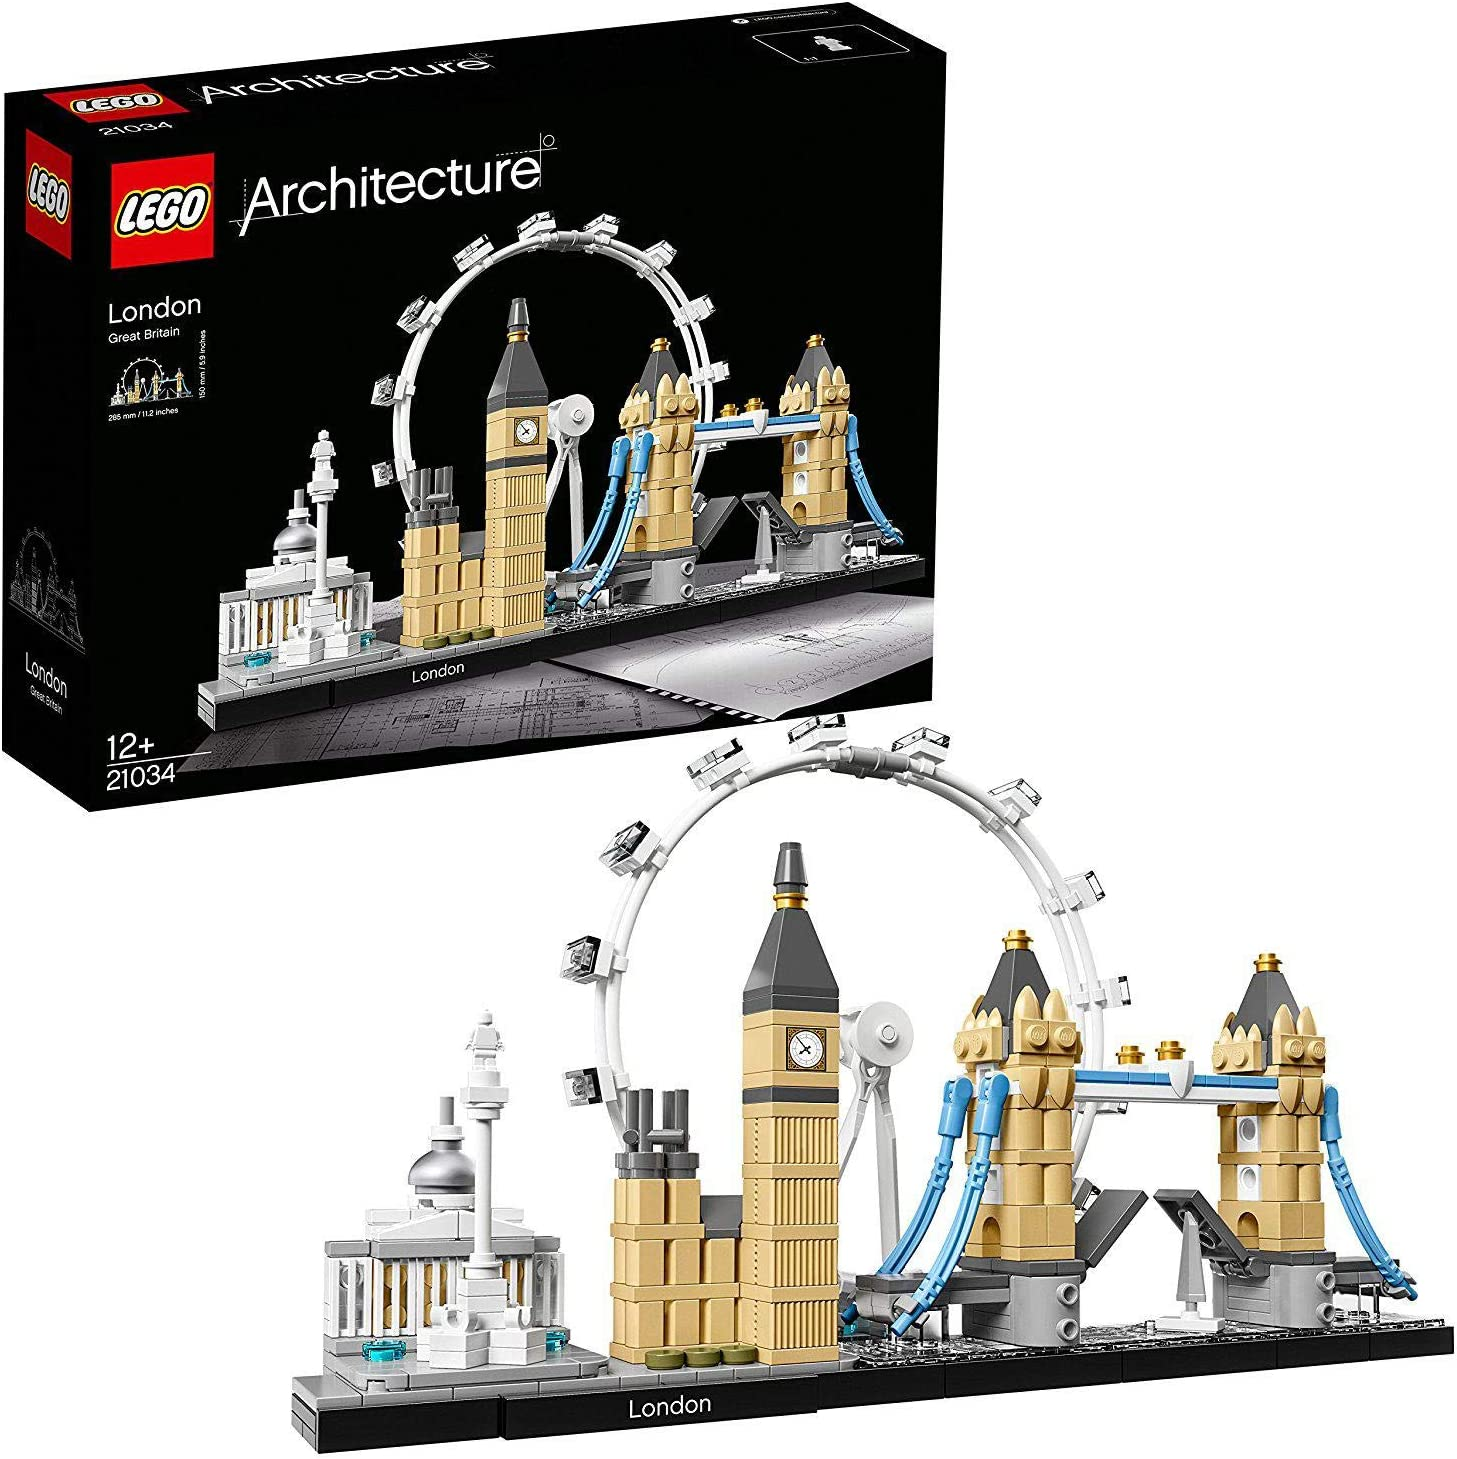 LEGO 21034 Architecture London Skyline Model Building Set £25.48 @ Amazon